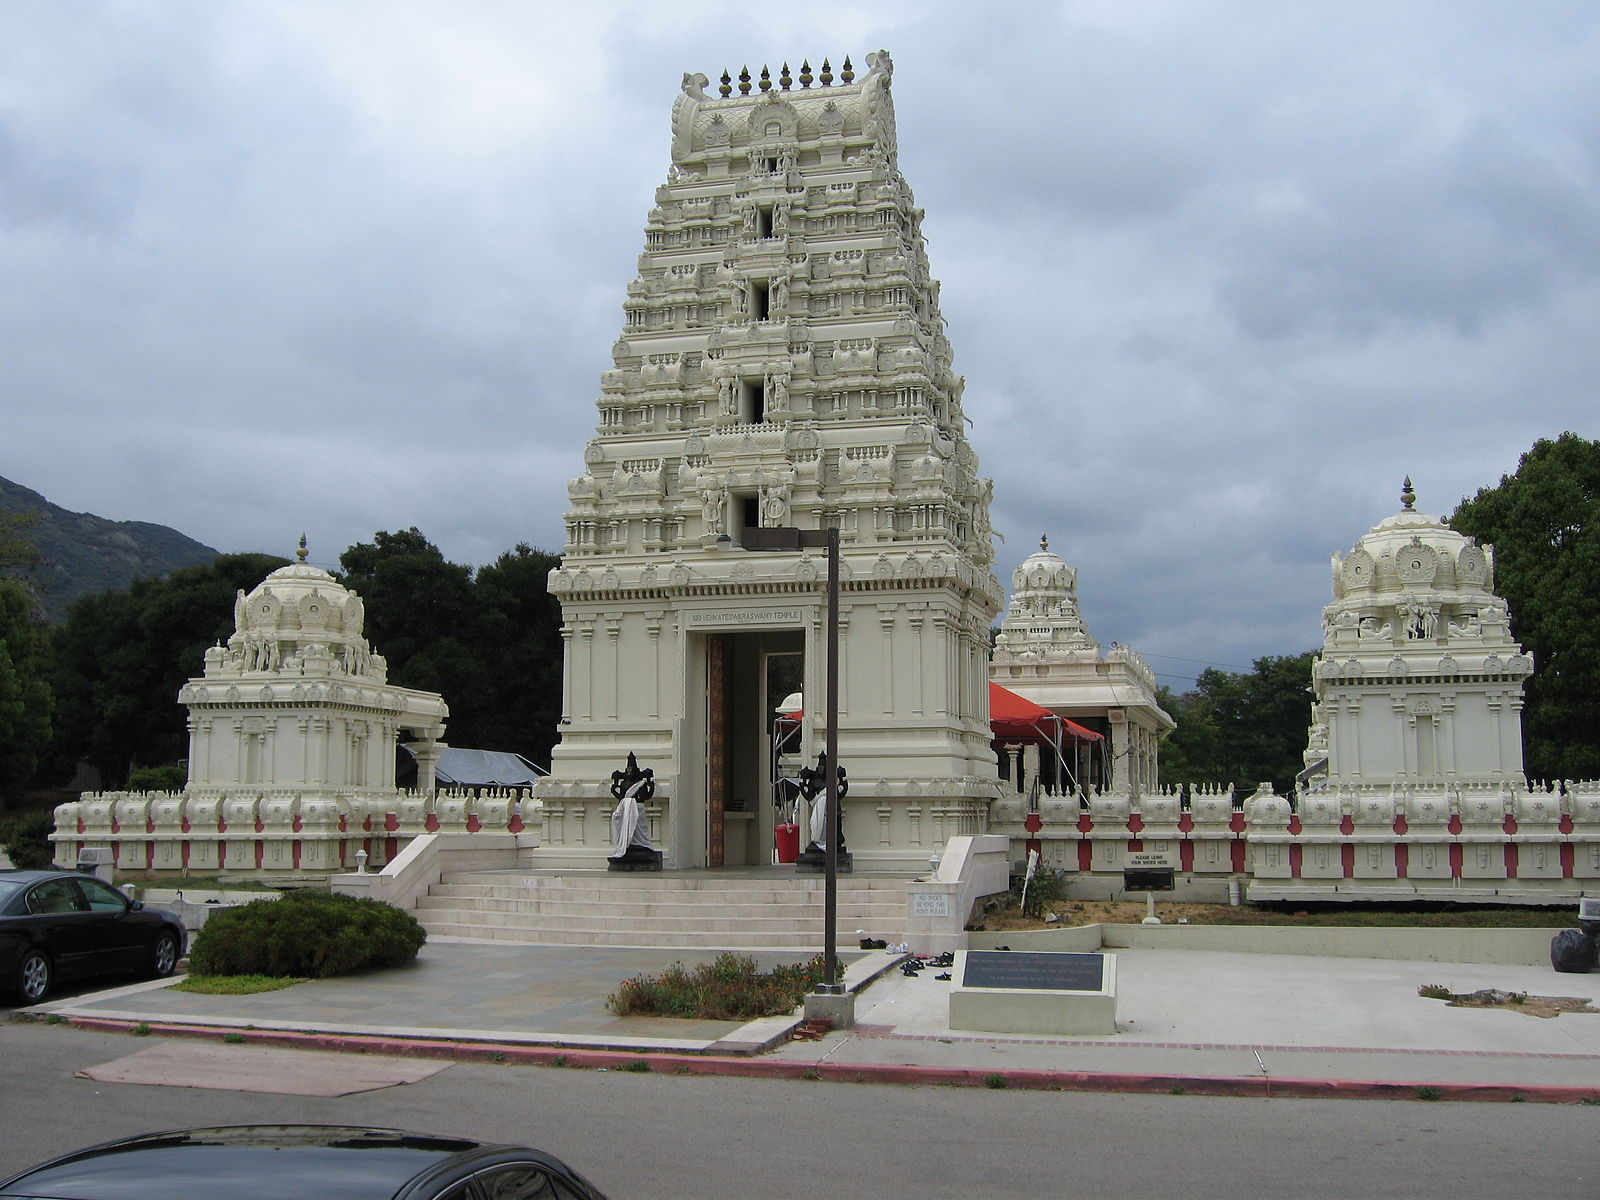 White stone entrance of the Malibu Hindu Temple in Calabasas with beautiful carvings.